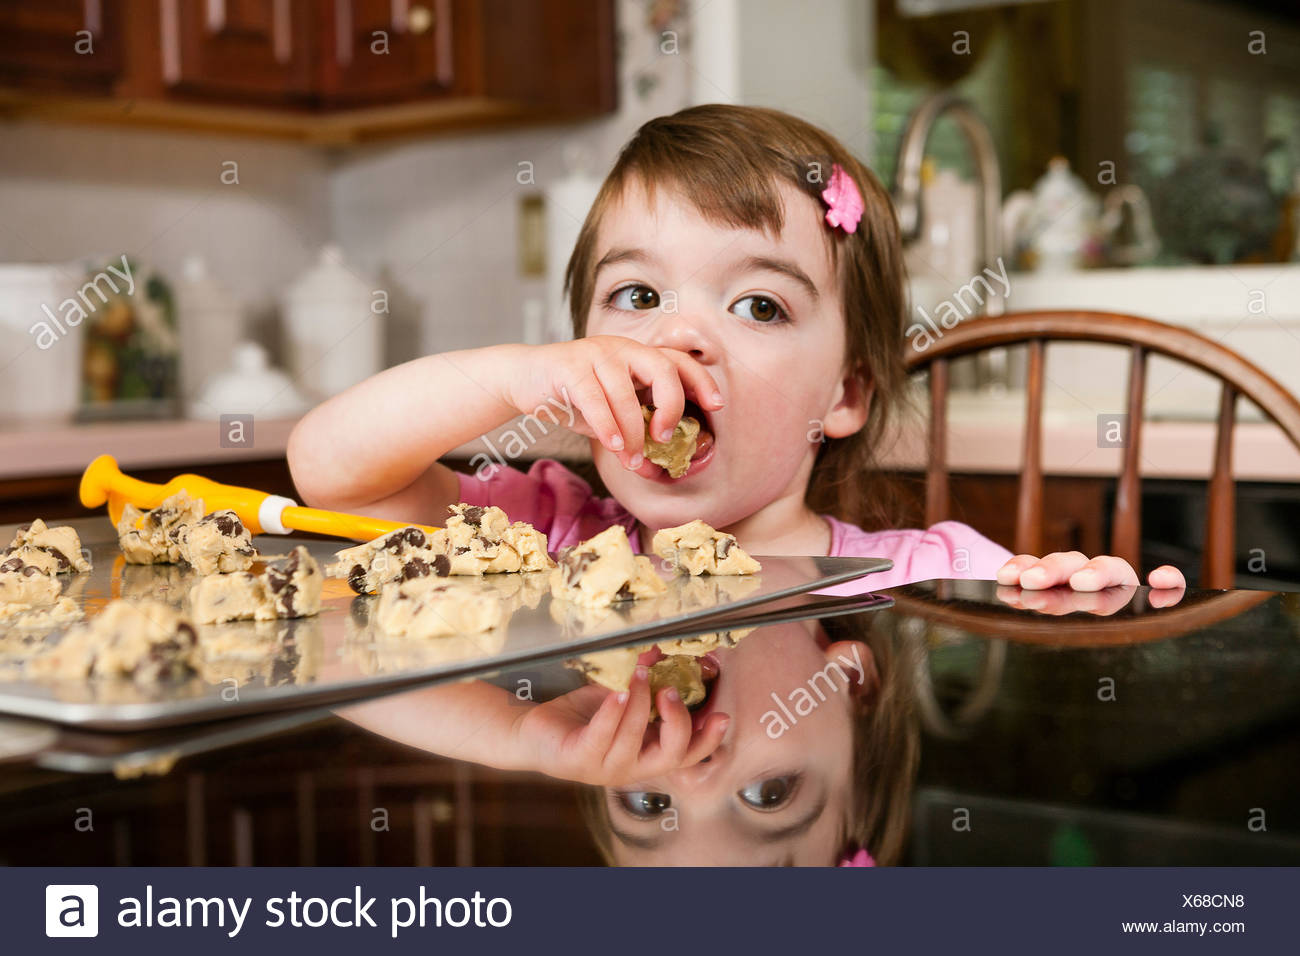 Close up portrait of young female toddler eating currant cakes - Stock Image